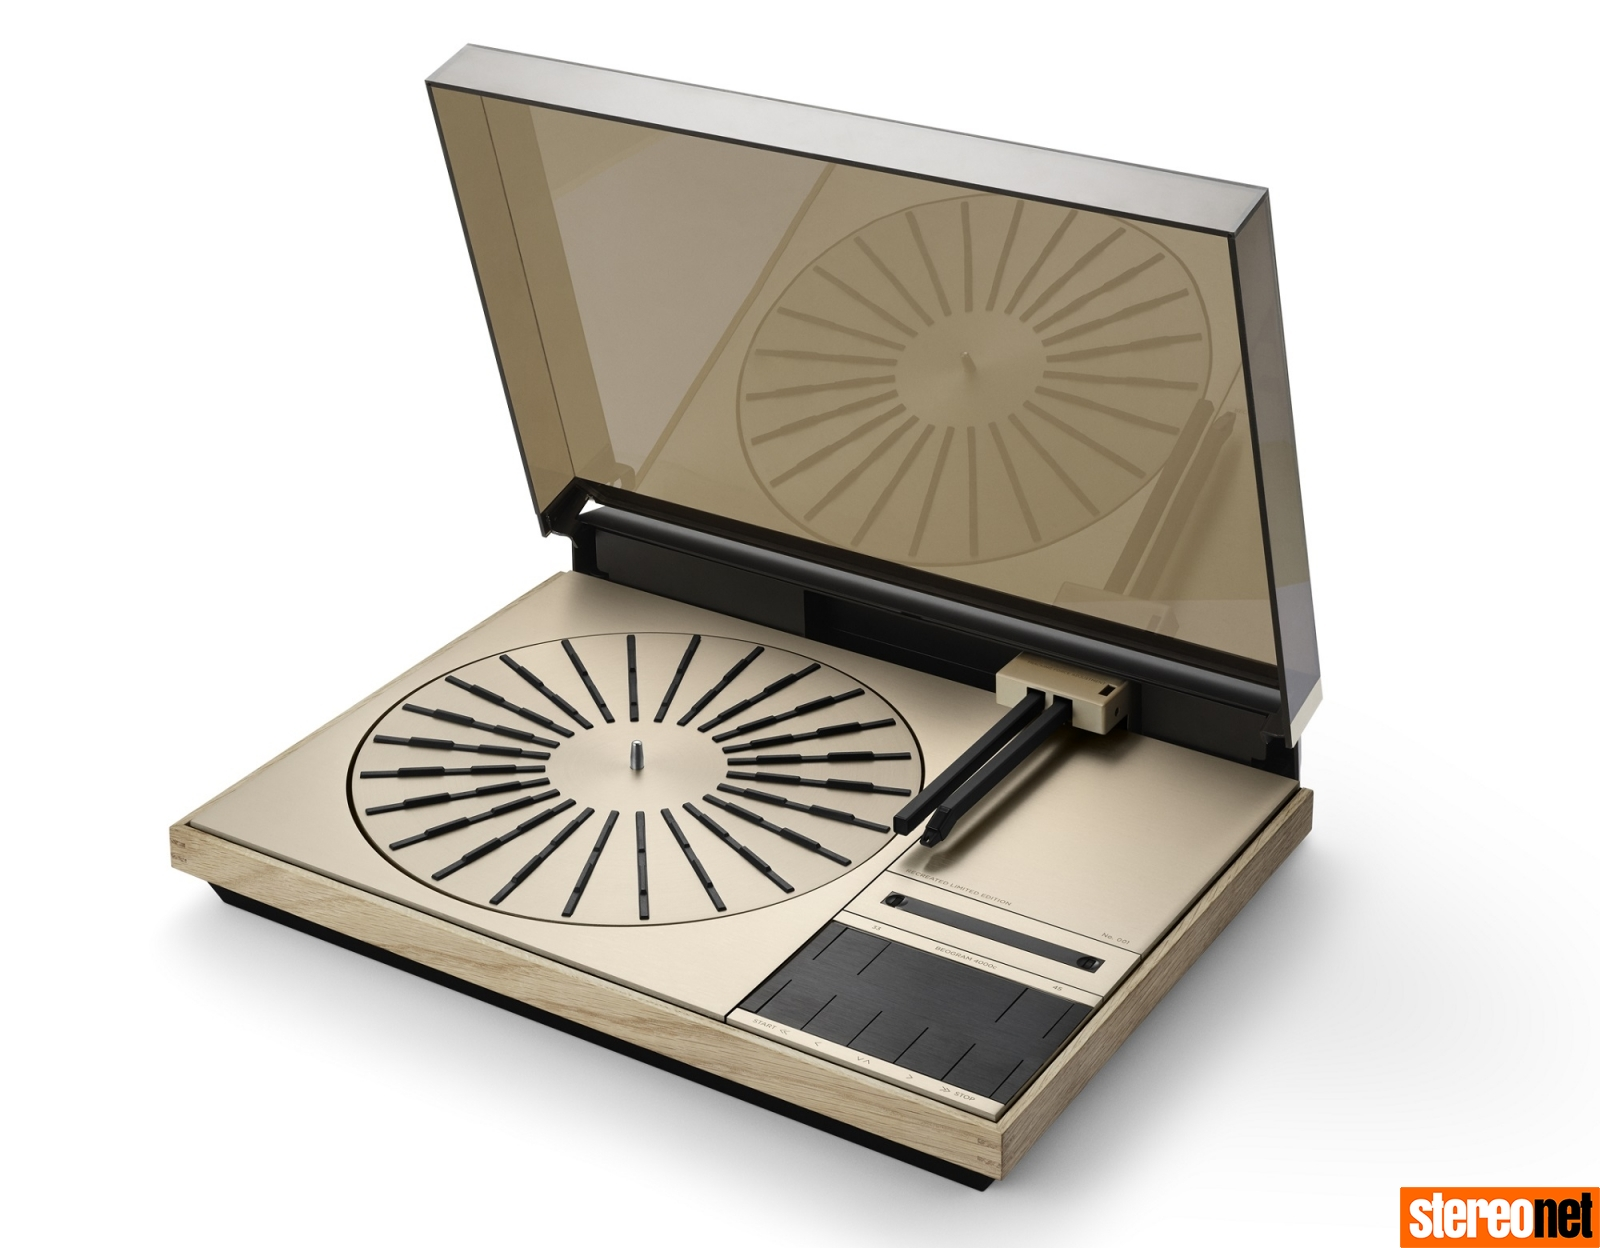 Bang & Olufsen 4000c Recreated Limited Edition turntable